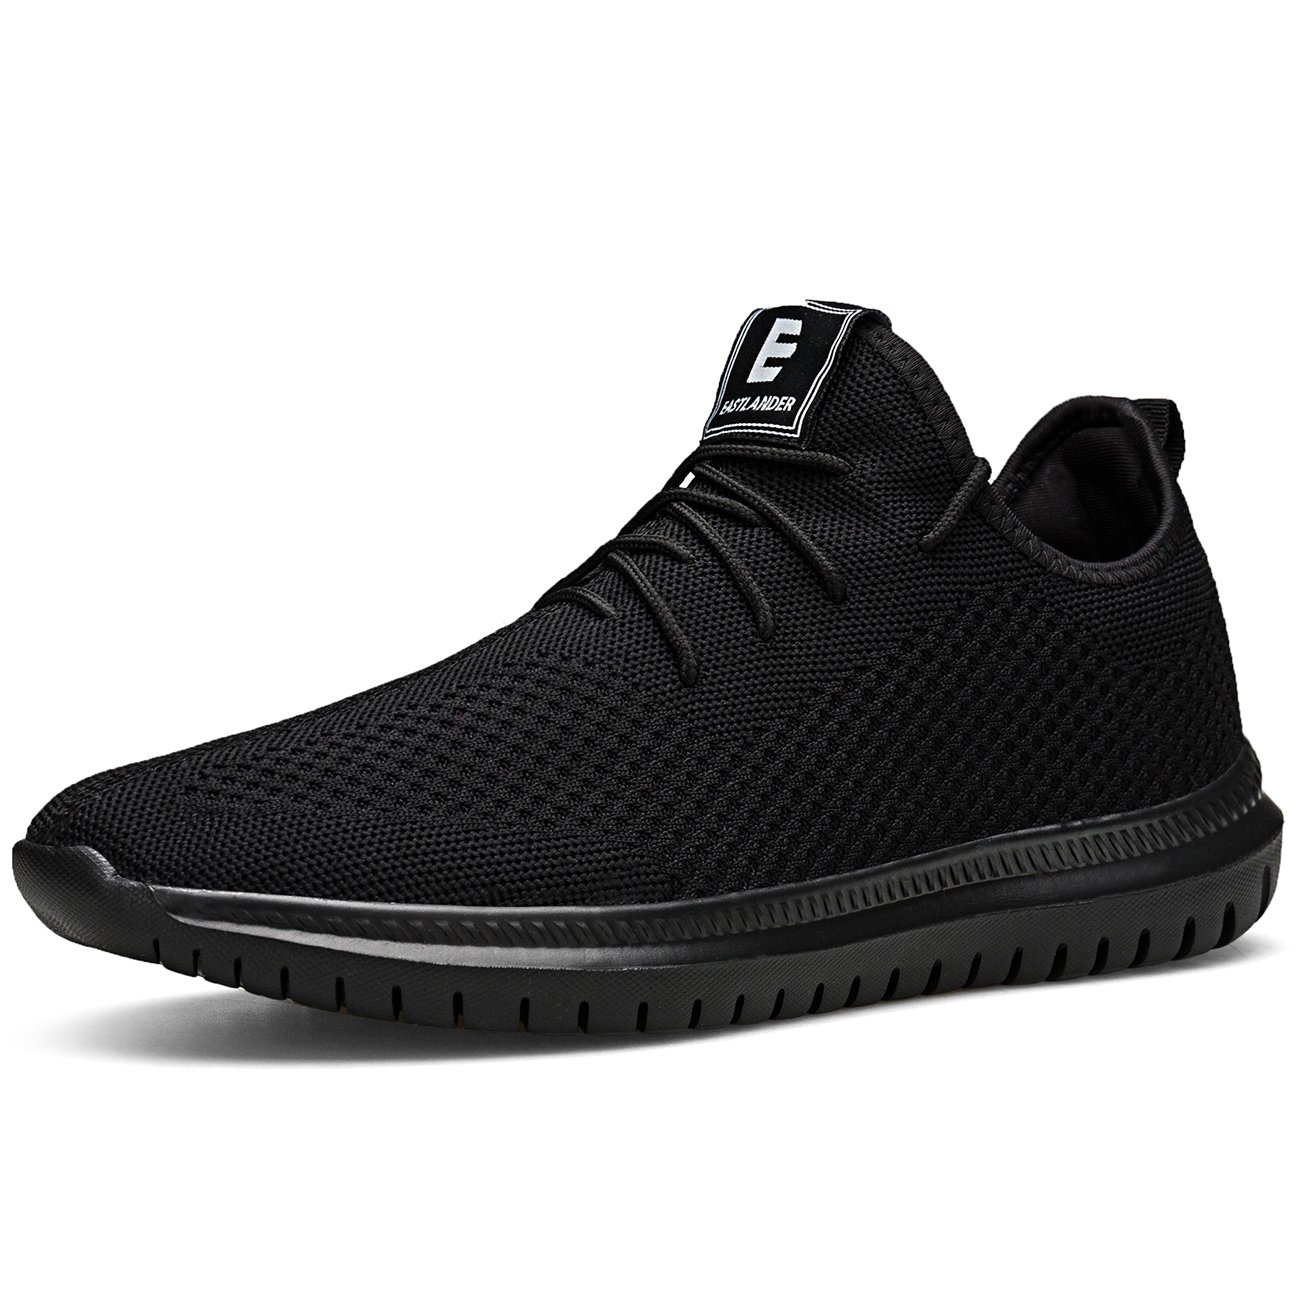 EAST LANDER Sneakers Men Women Lightweight Athletic Walking Shoes Casual Sneakers Lace-up Running Sports Shoes SPT002-U1-43